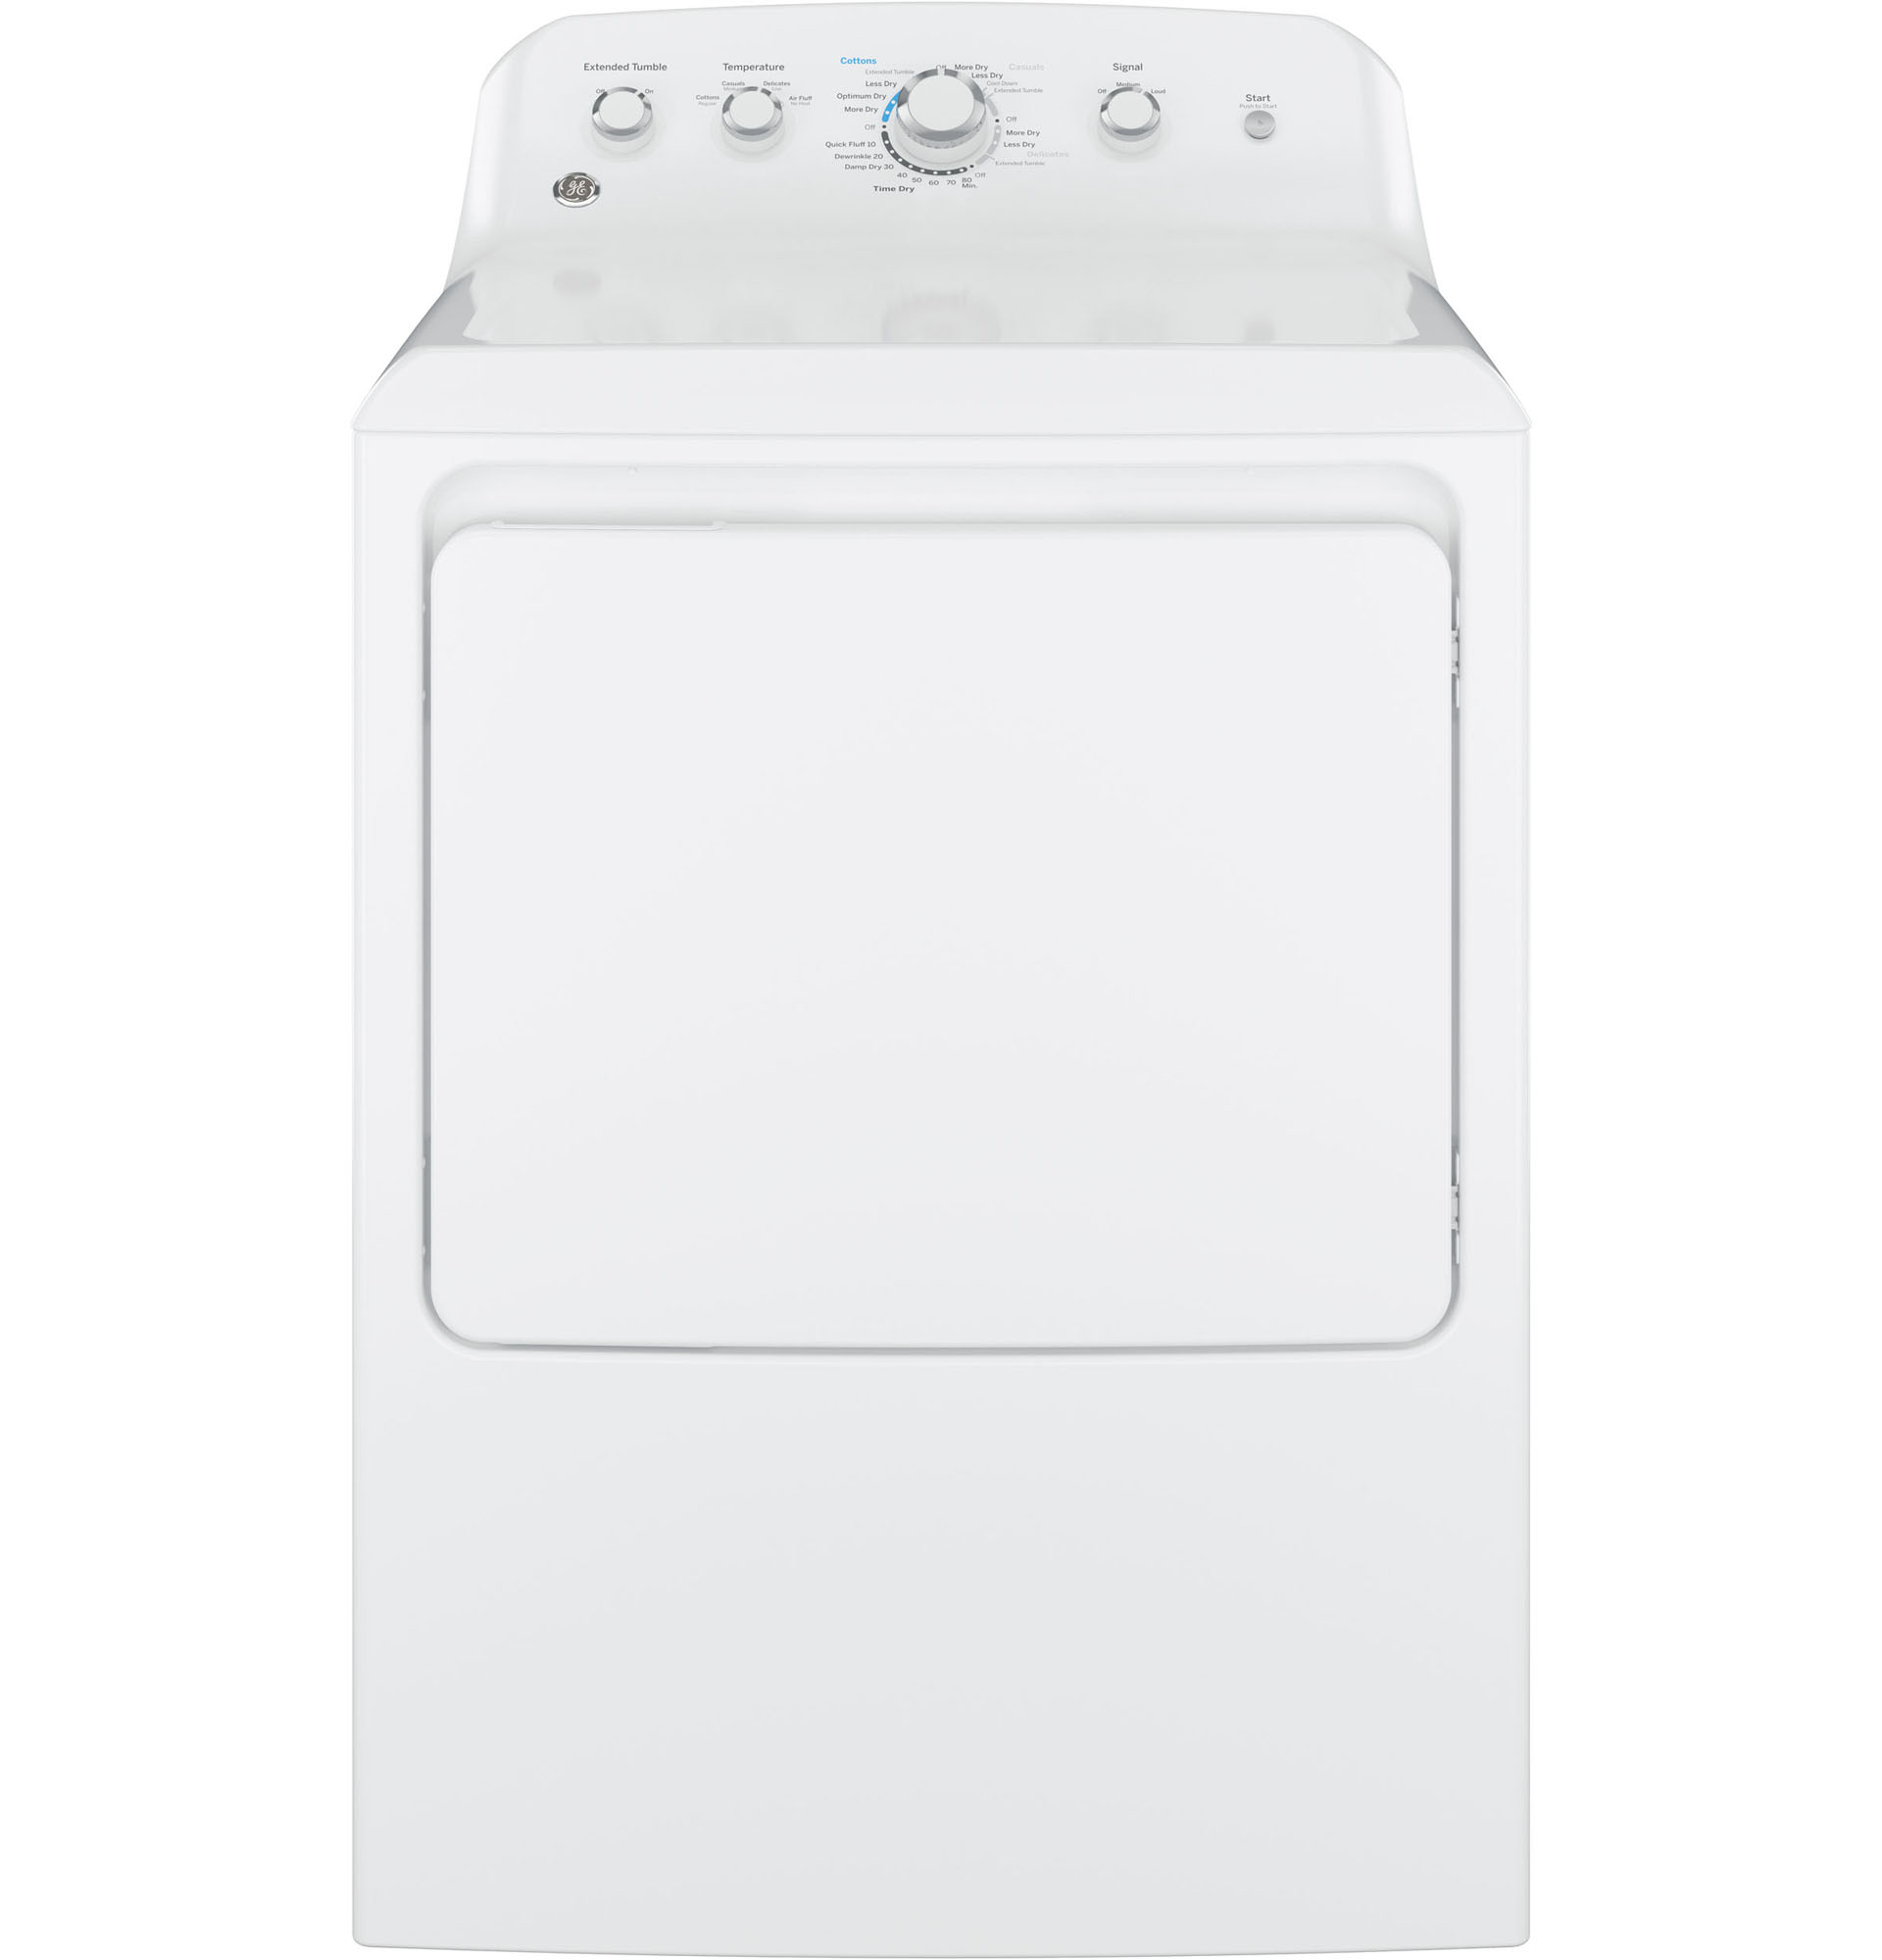 GE Appliances GTD42EASJWW 7.2 cu. ft. Electric Dryer w/ Aluminized Alloy Drum-White